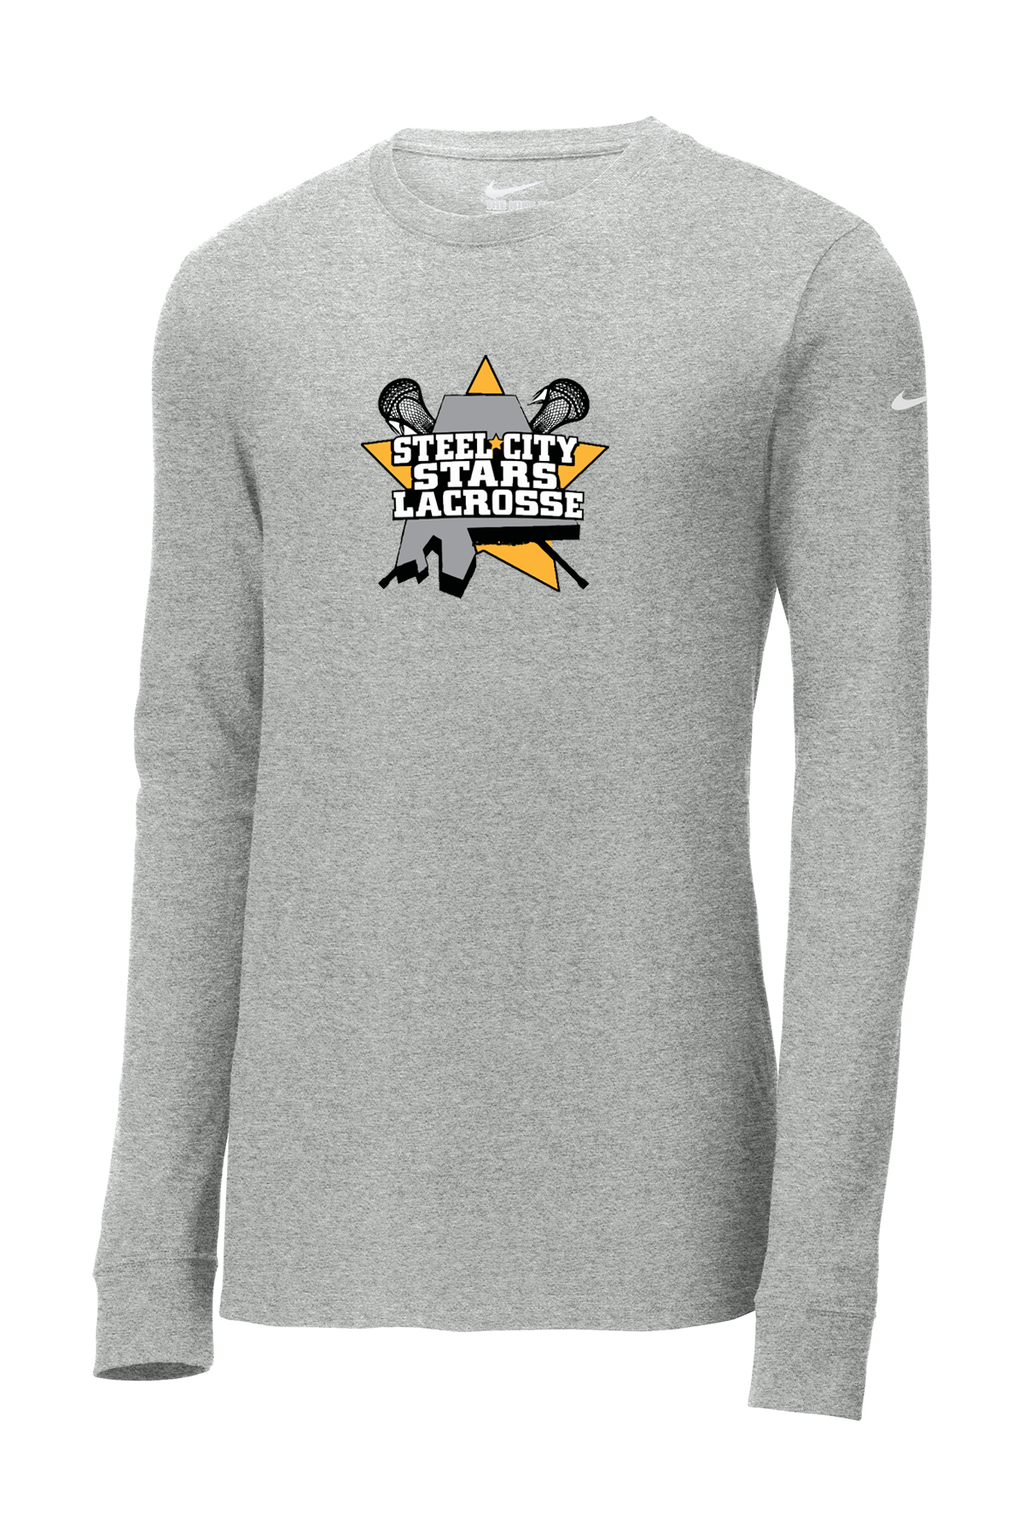 Stars Lacrosse Nike Ladies Core Cotton Long Sleeve Tee